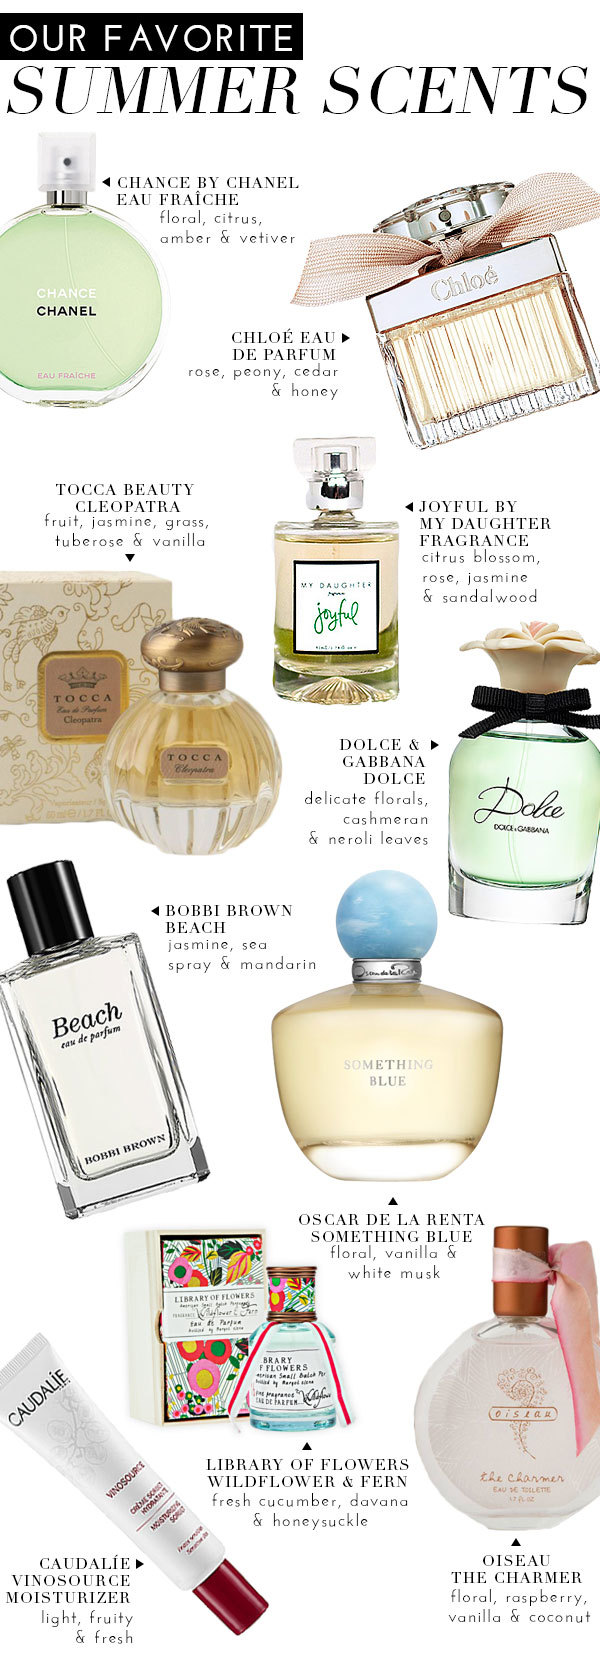 We love switching up our perfumes during the summer months here at Glitter Guide and Team Glitter Guide is sharing Our Favorite Summer Scents!